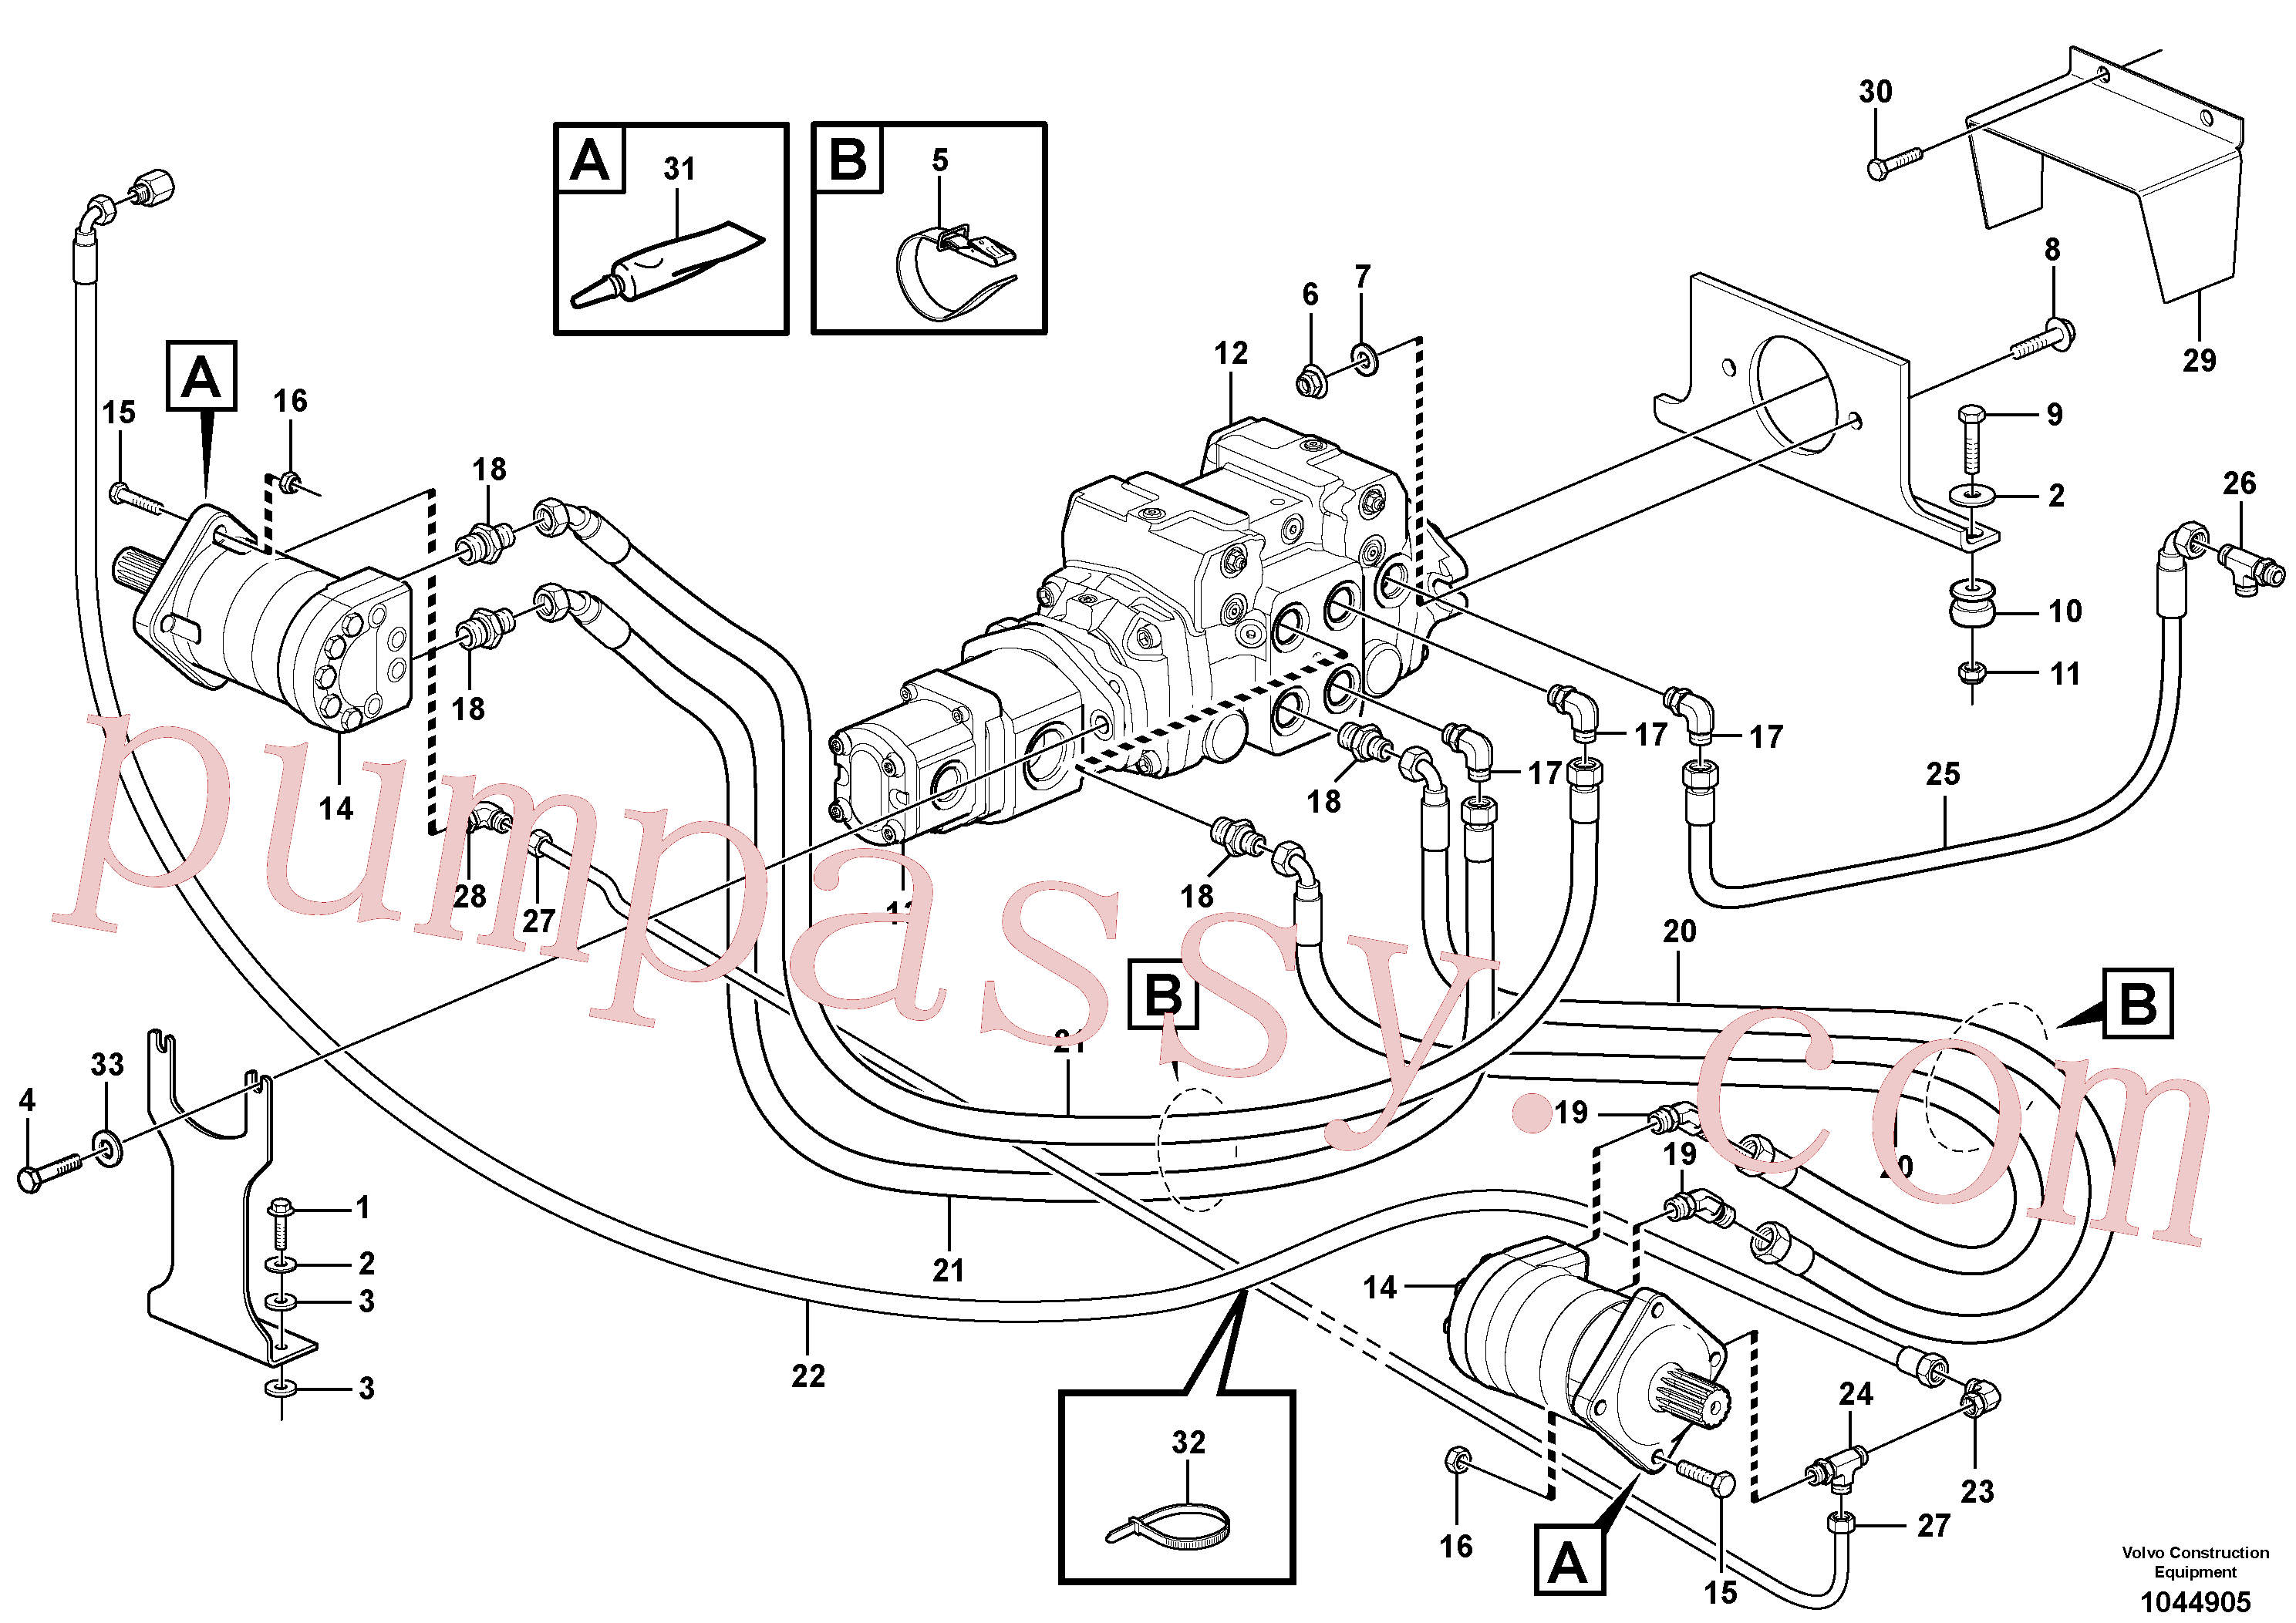 VOE11841243 for Volvo Hydraulic system Transport(1044905 assembly)